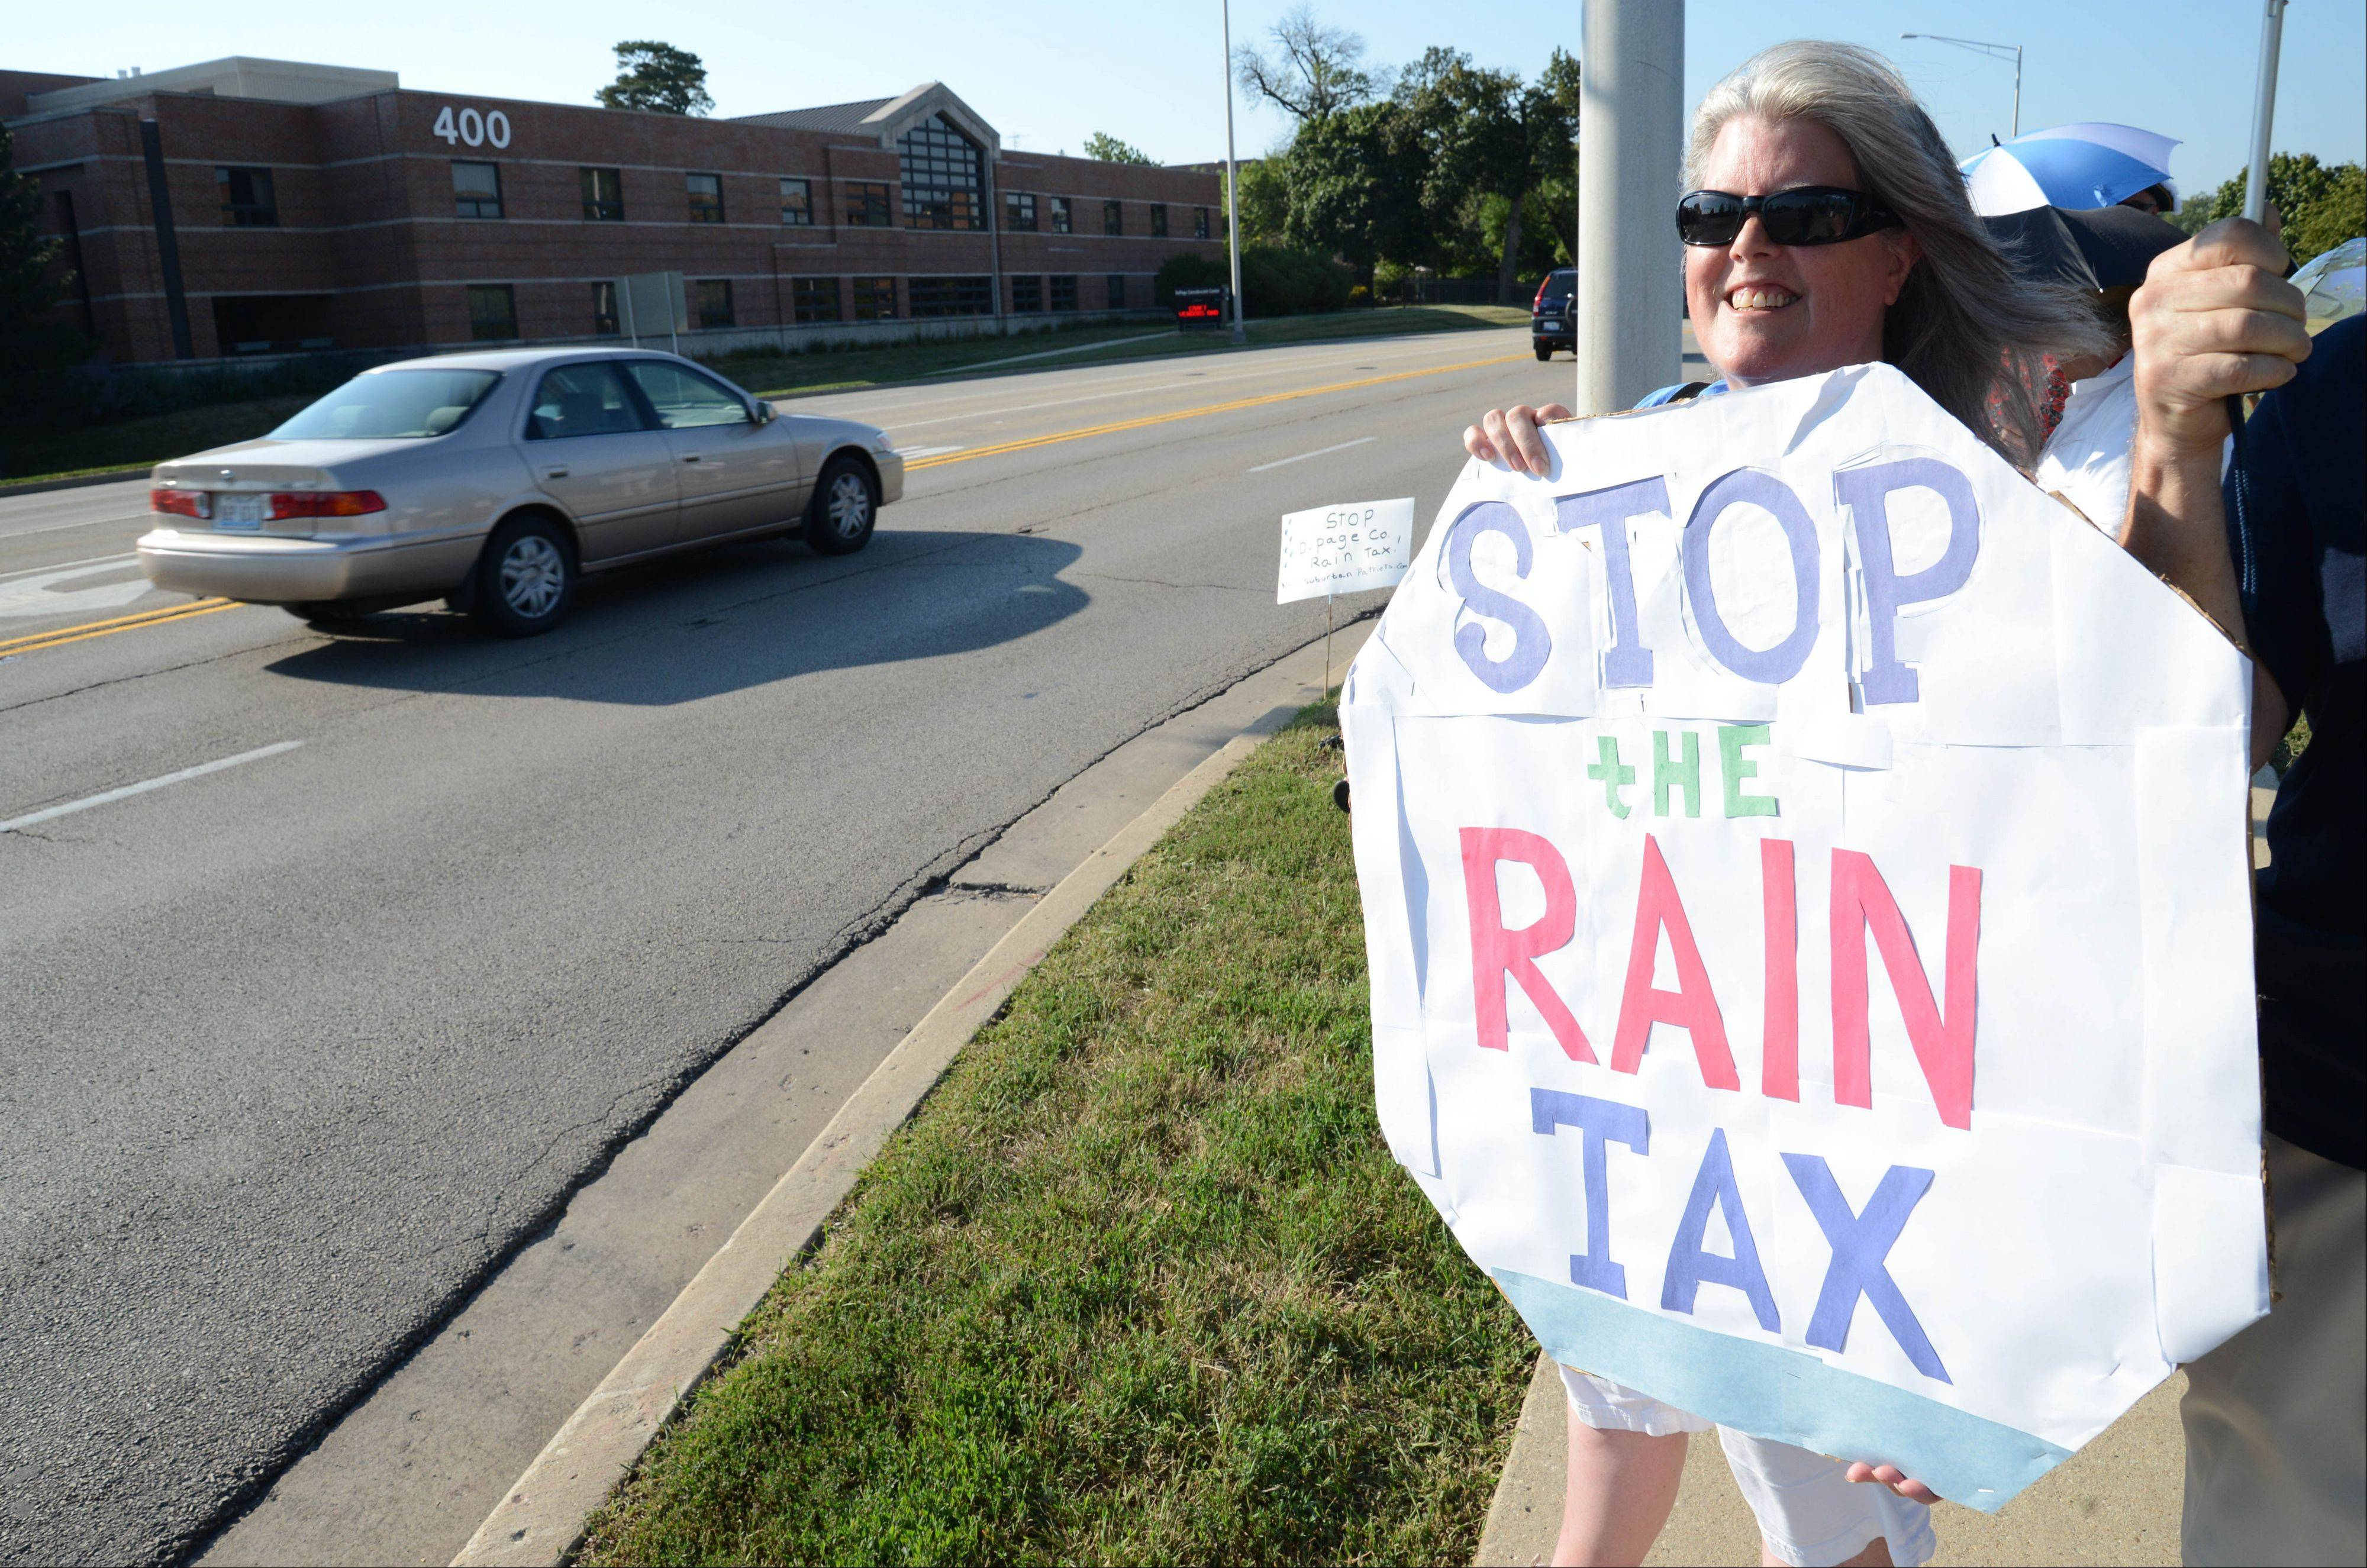 On Tuesday night, Janet Shaw of Wheaton and more than 30 other residents stood in front of DuPage County's administration building along County Farm Road to protest a new state law that gives DuPage the power to impose a stormwater fee on every land owner in the county.